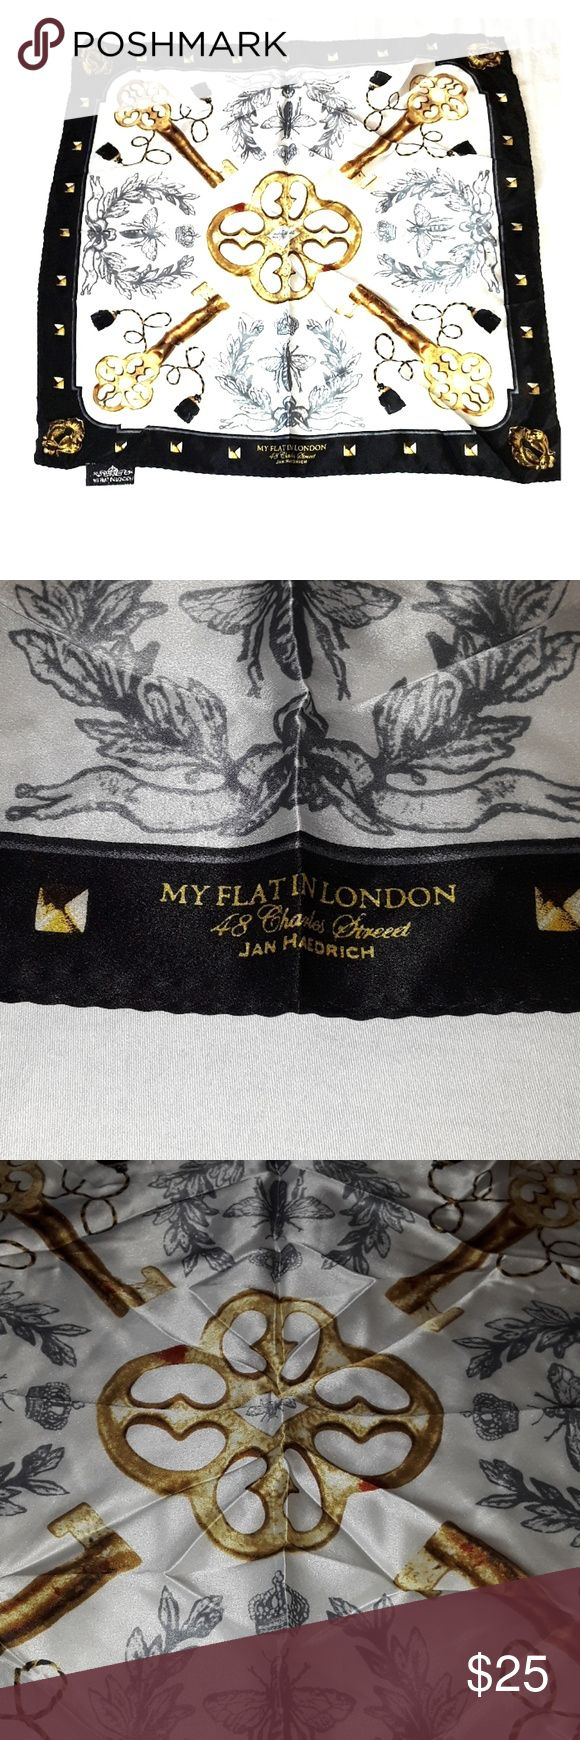 My Flat in London silk scarf My Flat in London silk scarf. Scarf is in gently used condition no stains, beautiful pattern has signature my flat in London logo on front. Gorgeous 100% silk, this is a smaller scarf that can be used on your bag or however you would like to use it, measurements are in pictures measures about 19 inch by 19 inch. Smoke-free home, look at photos before purchasing, as all sales are final happy Poshing. My Flat in London Accessories Scarves & Wraps